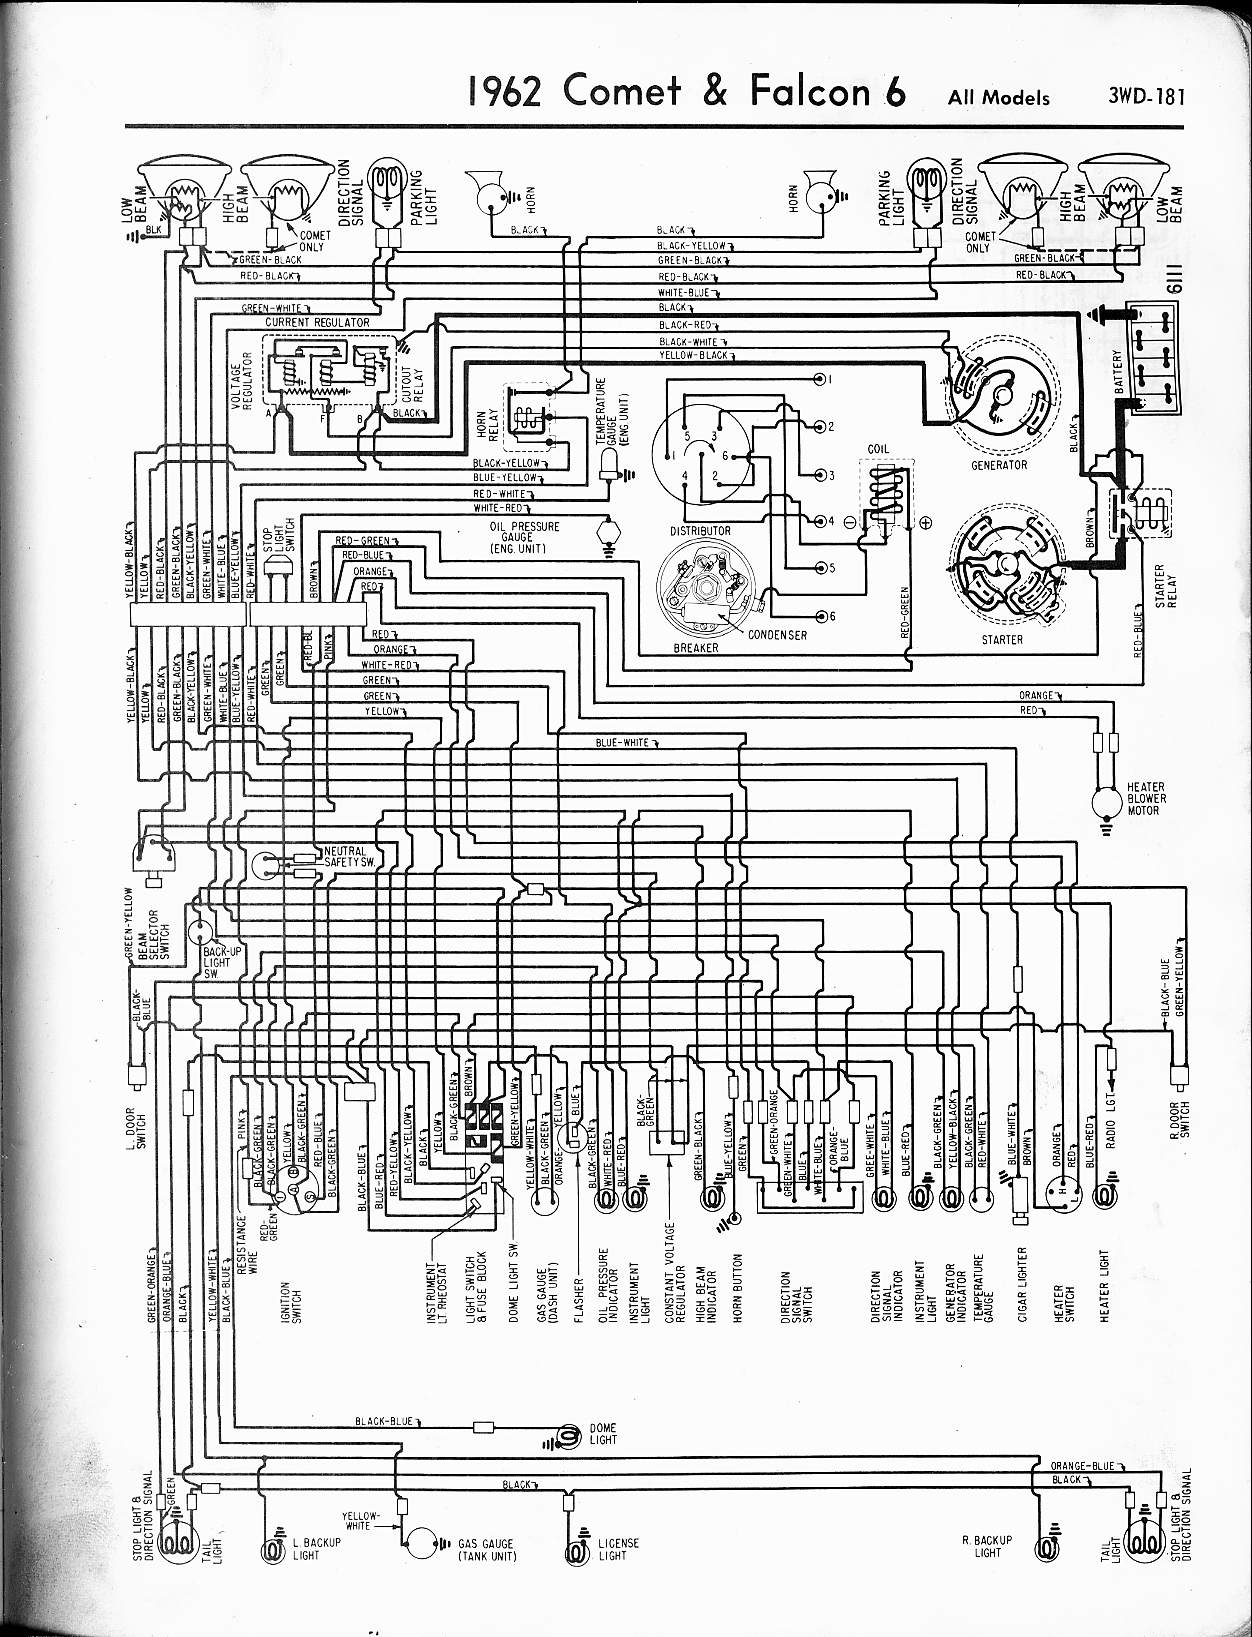 1968 F100 Wiring Harness Manual E Books E4od Mlps Diagram Ford Wire Diagramsford Ba Diagrams Online